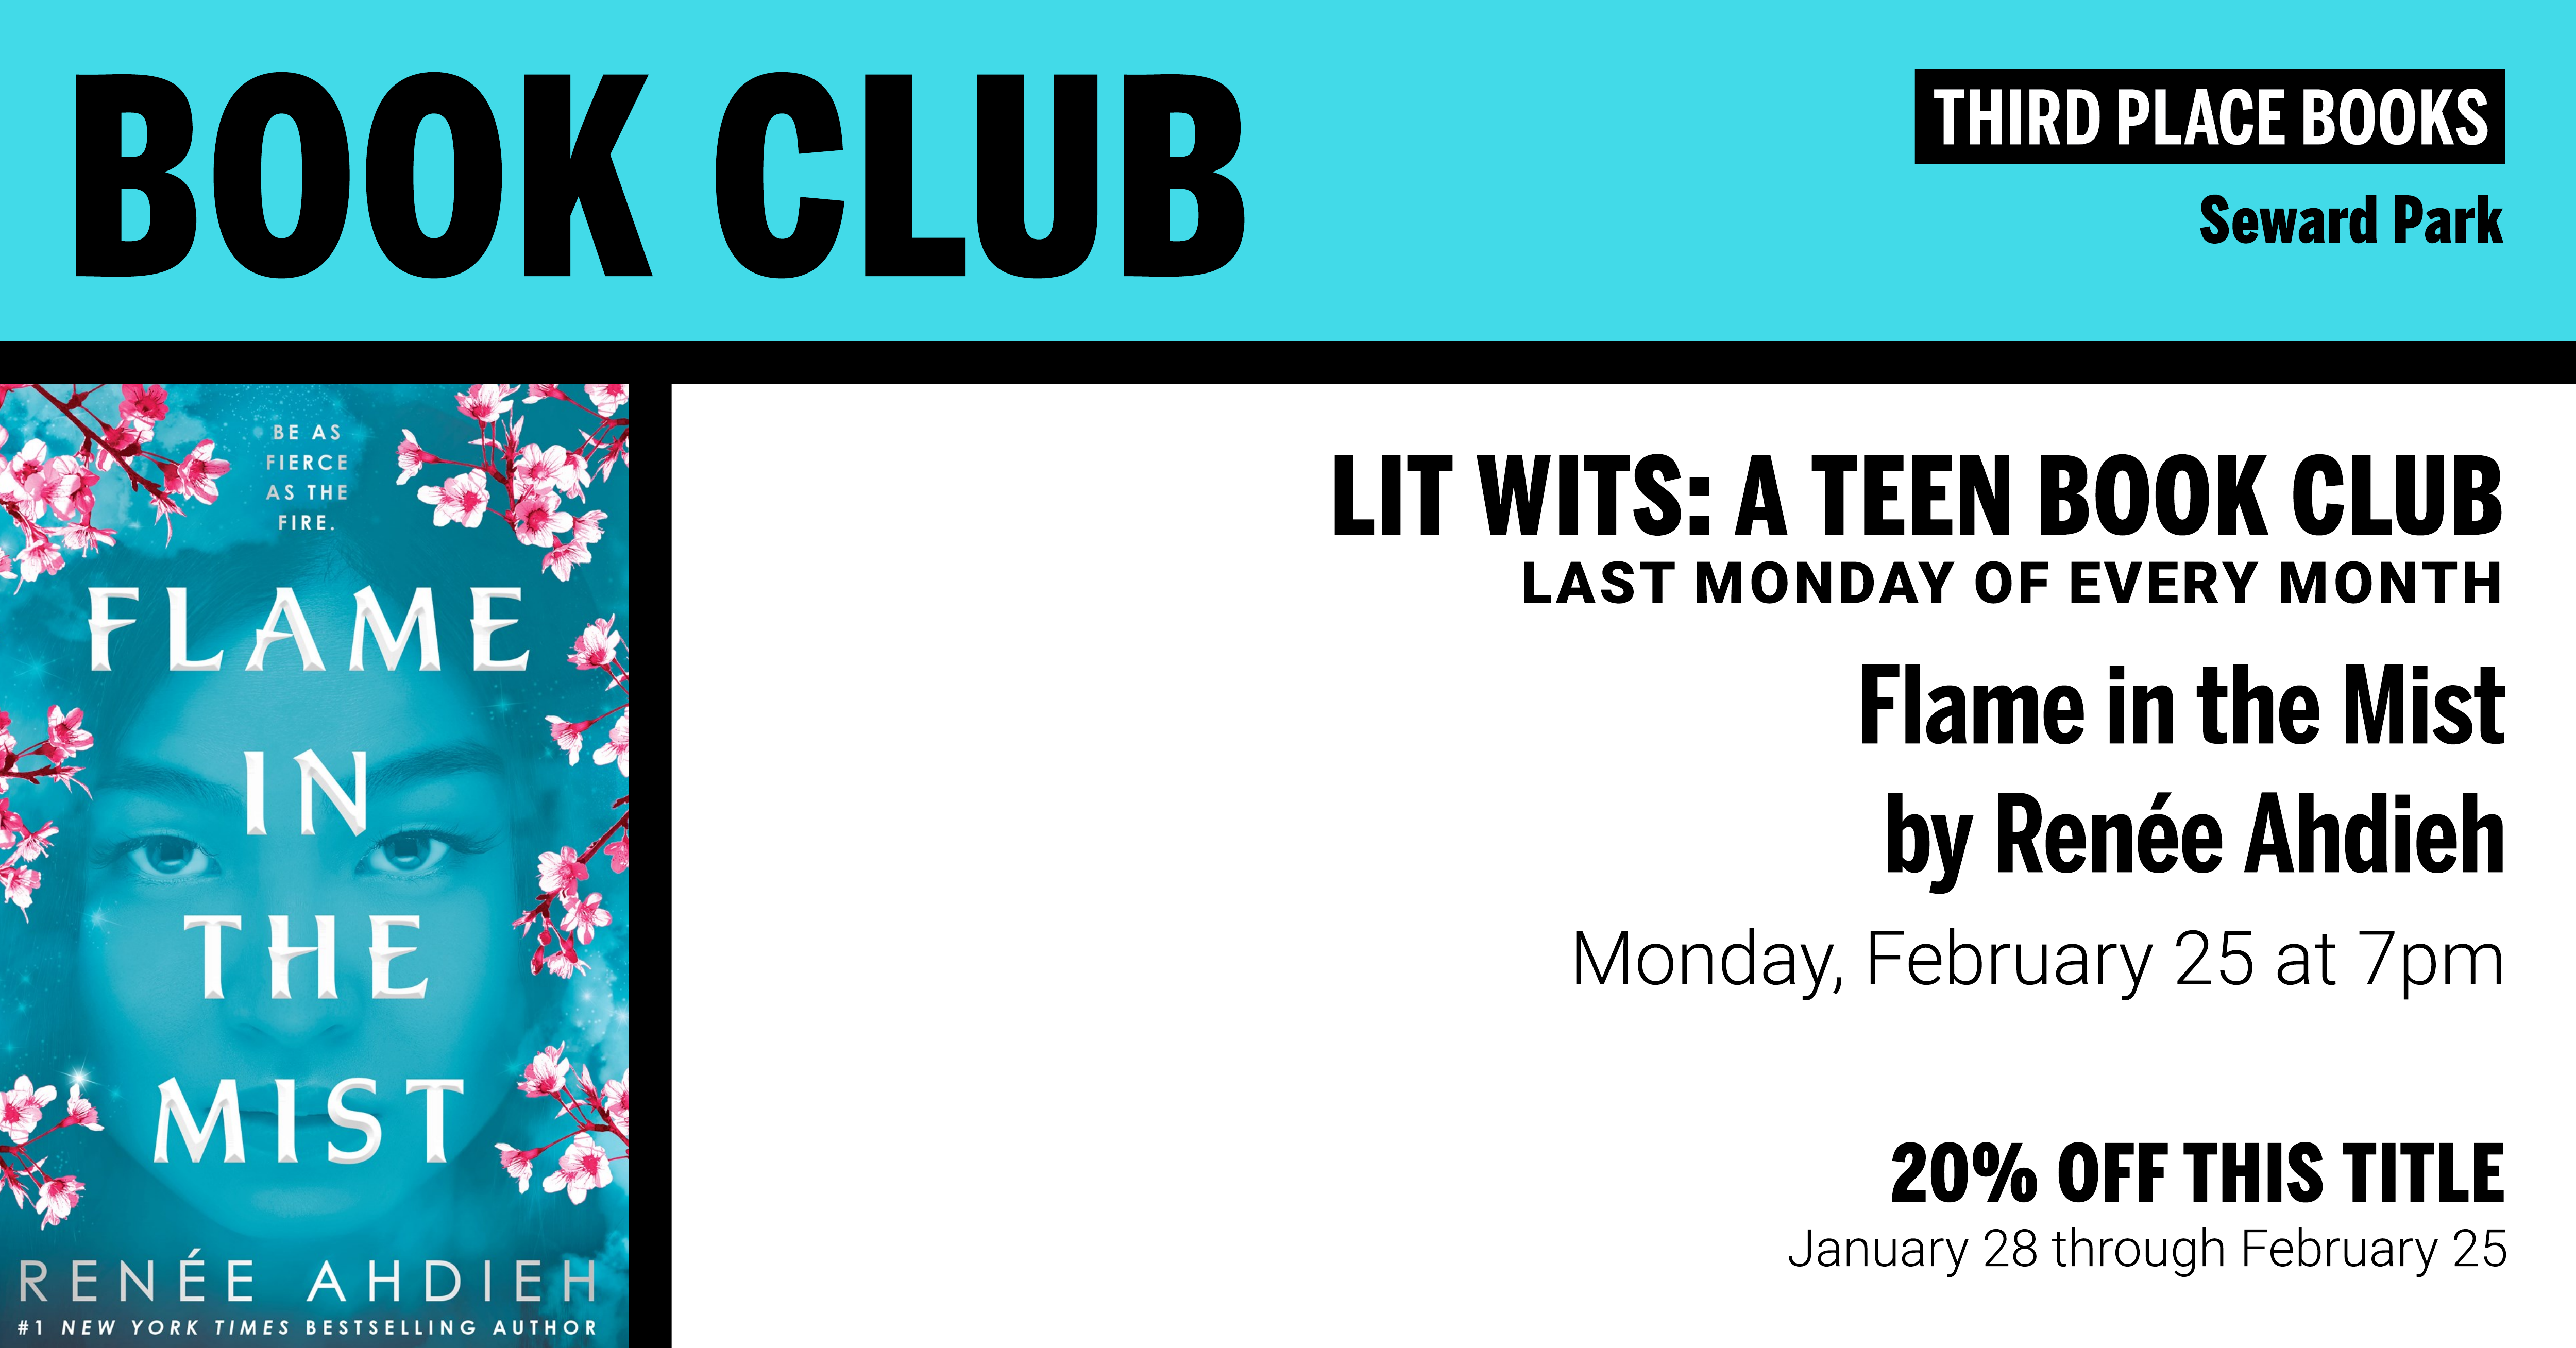 Lit Wits: A Teen Book Club discussing Flame in the Mist on Monday, February 25 at 7pm